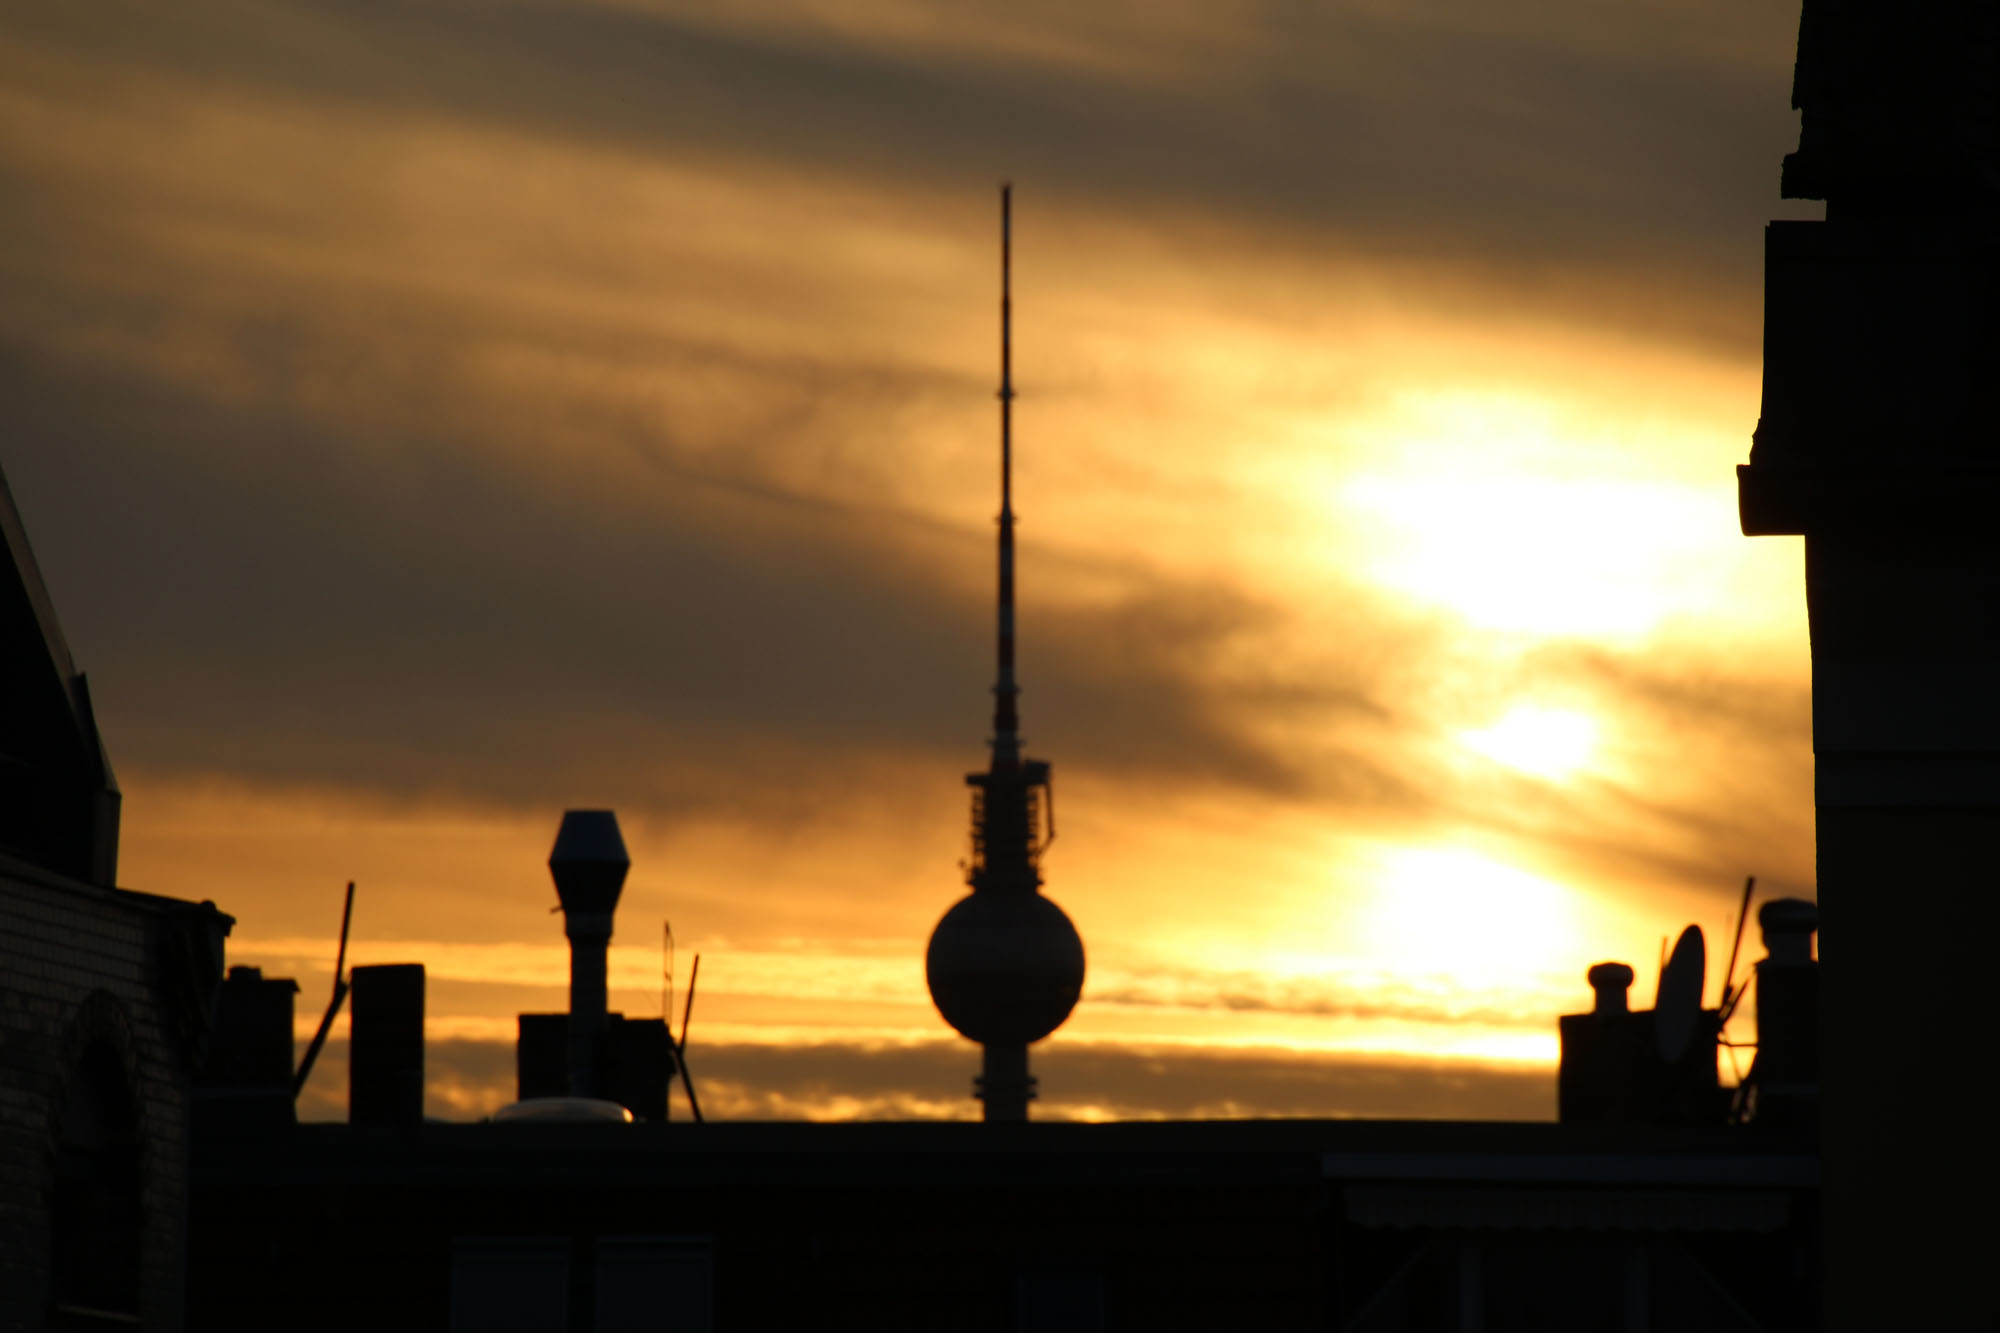 sunset behind tv tower